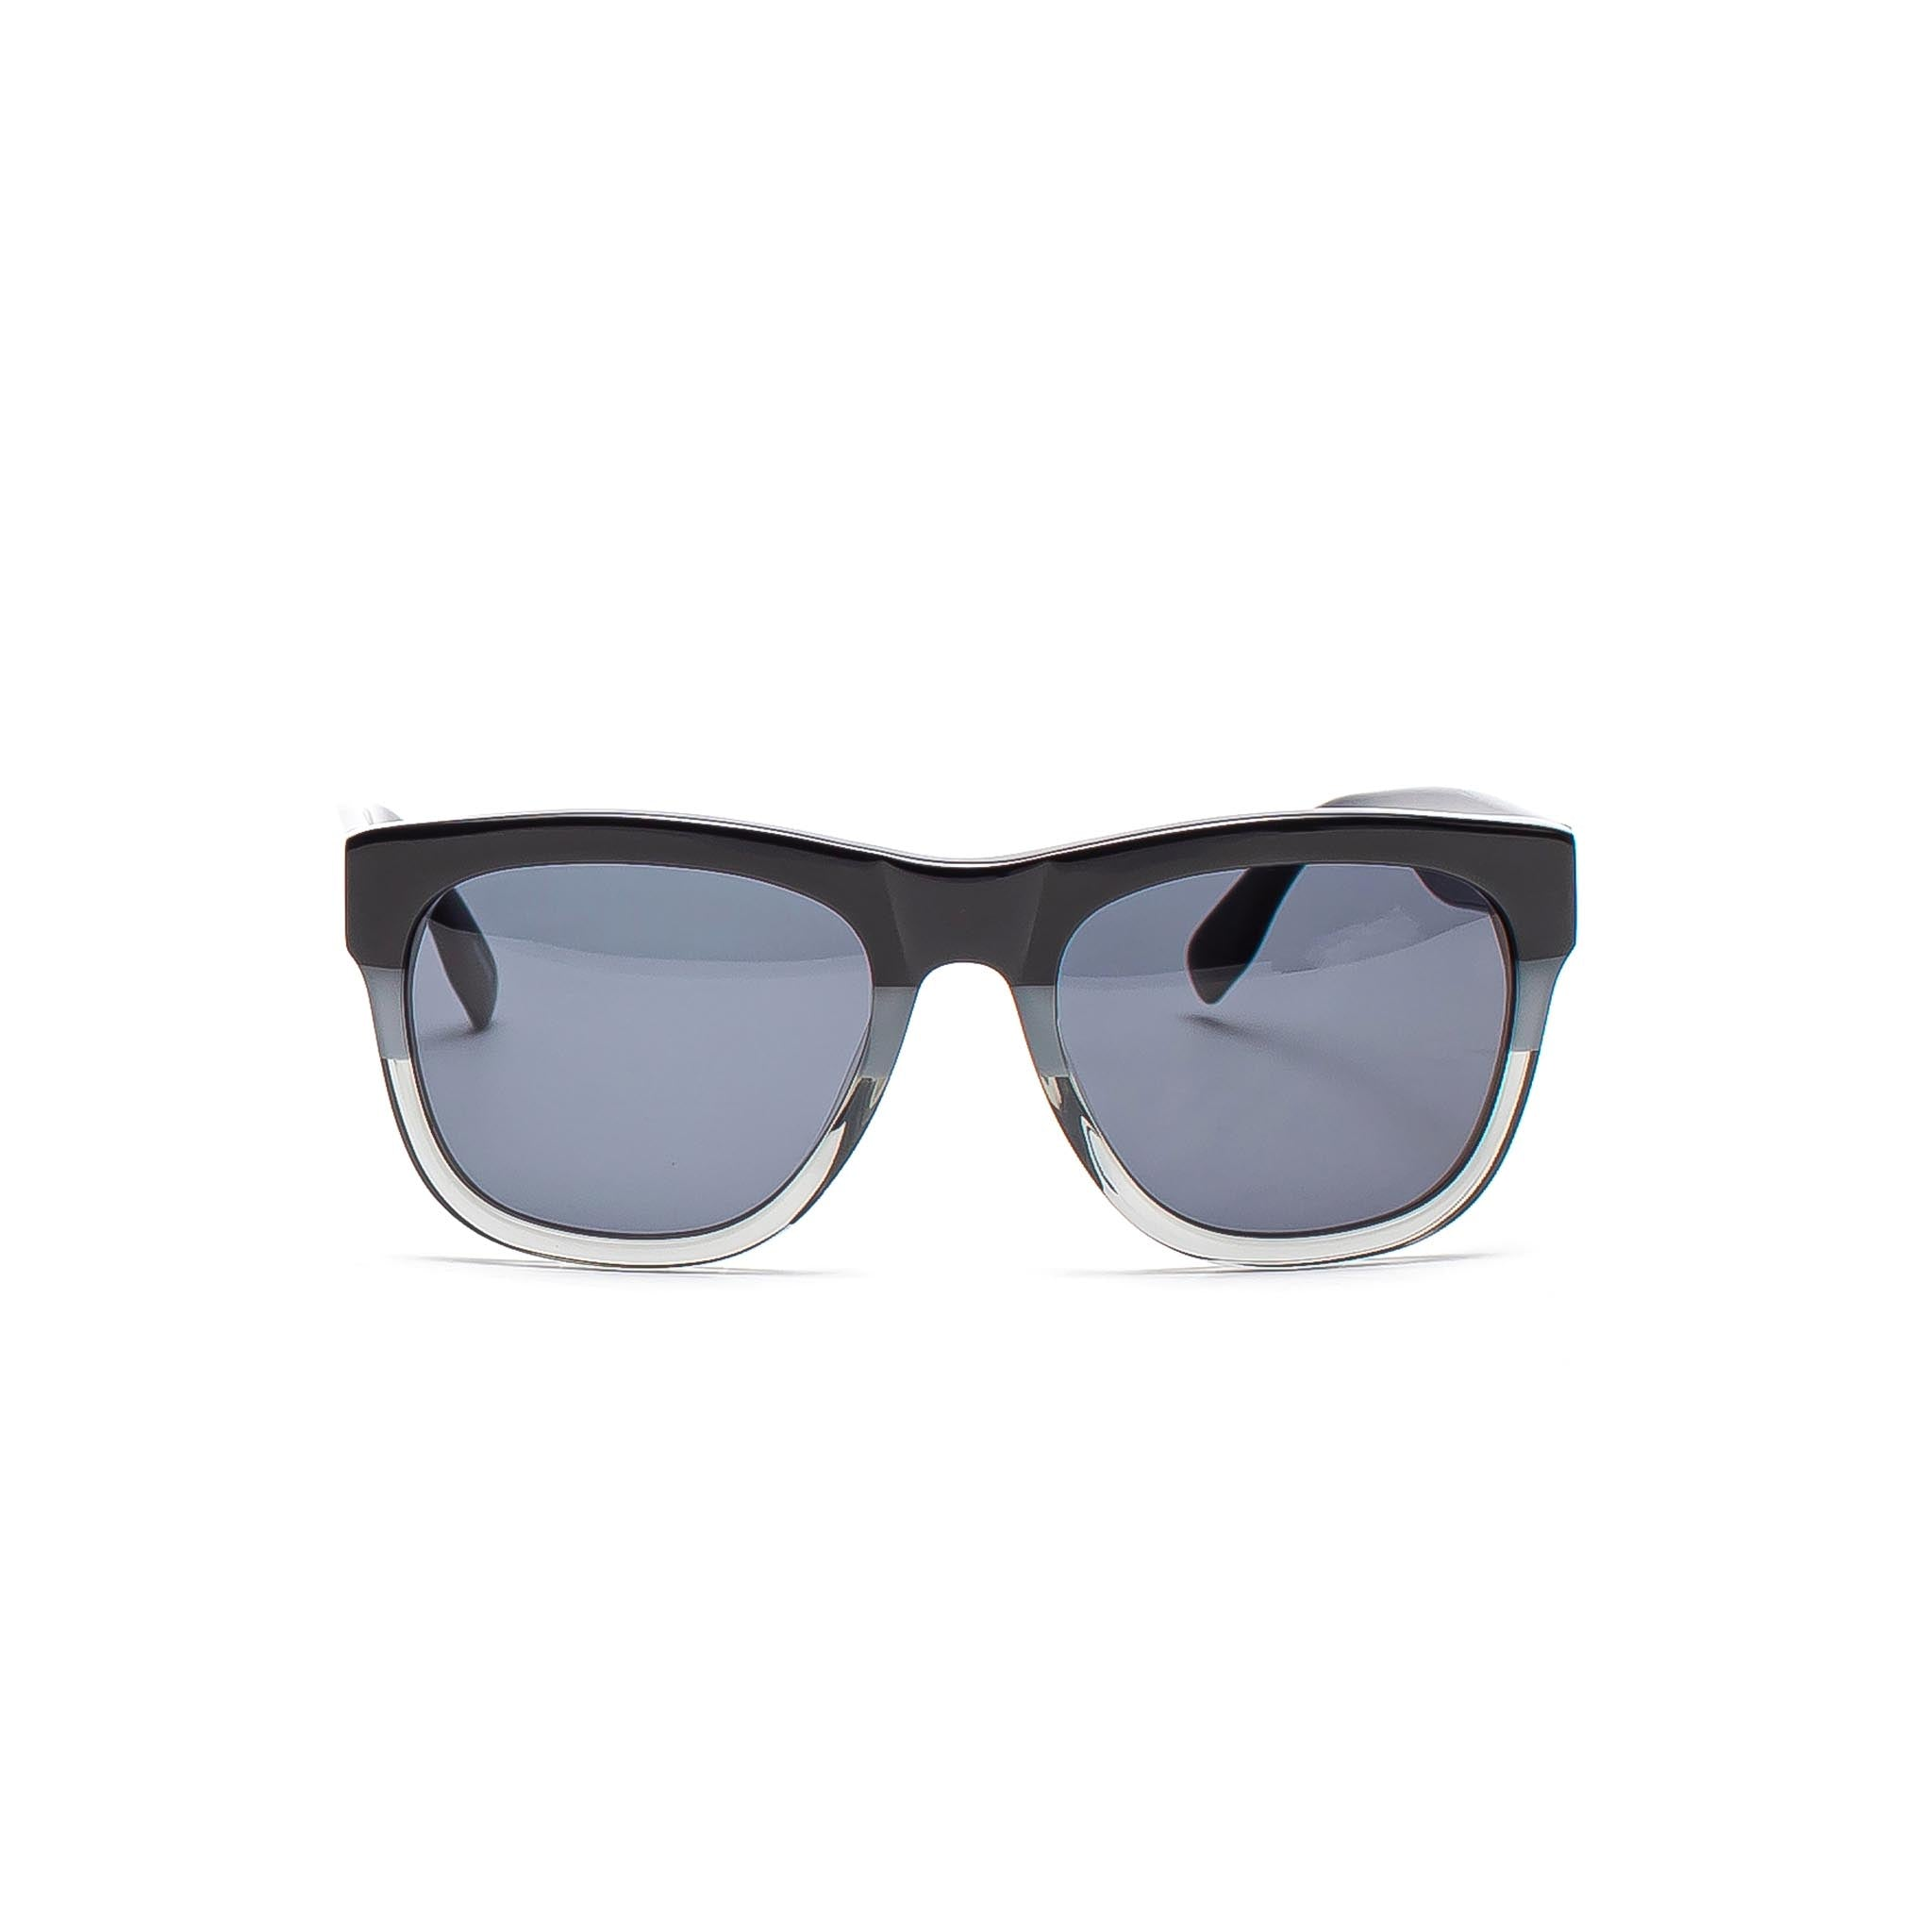 HOMME+ HP010 Sunglasses Black/Grey